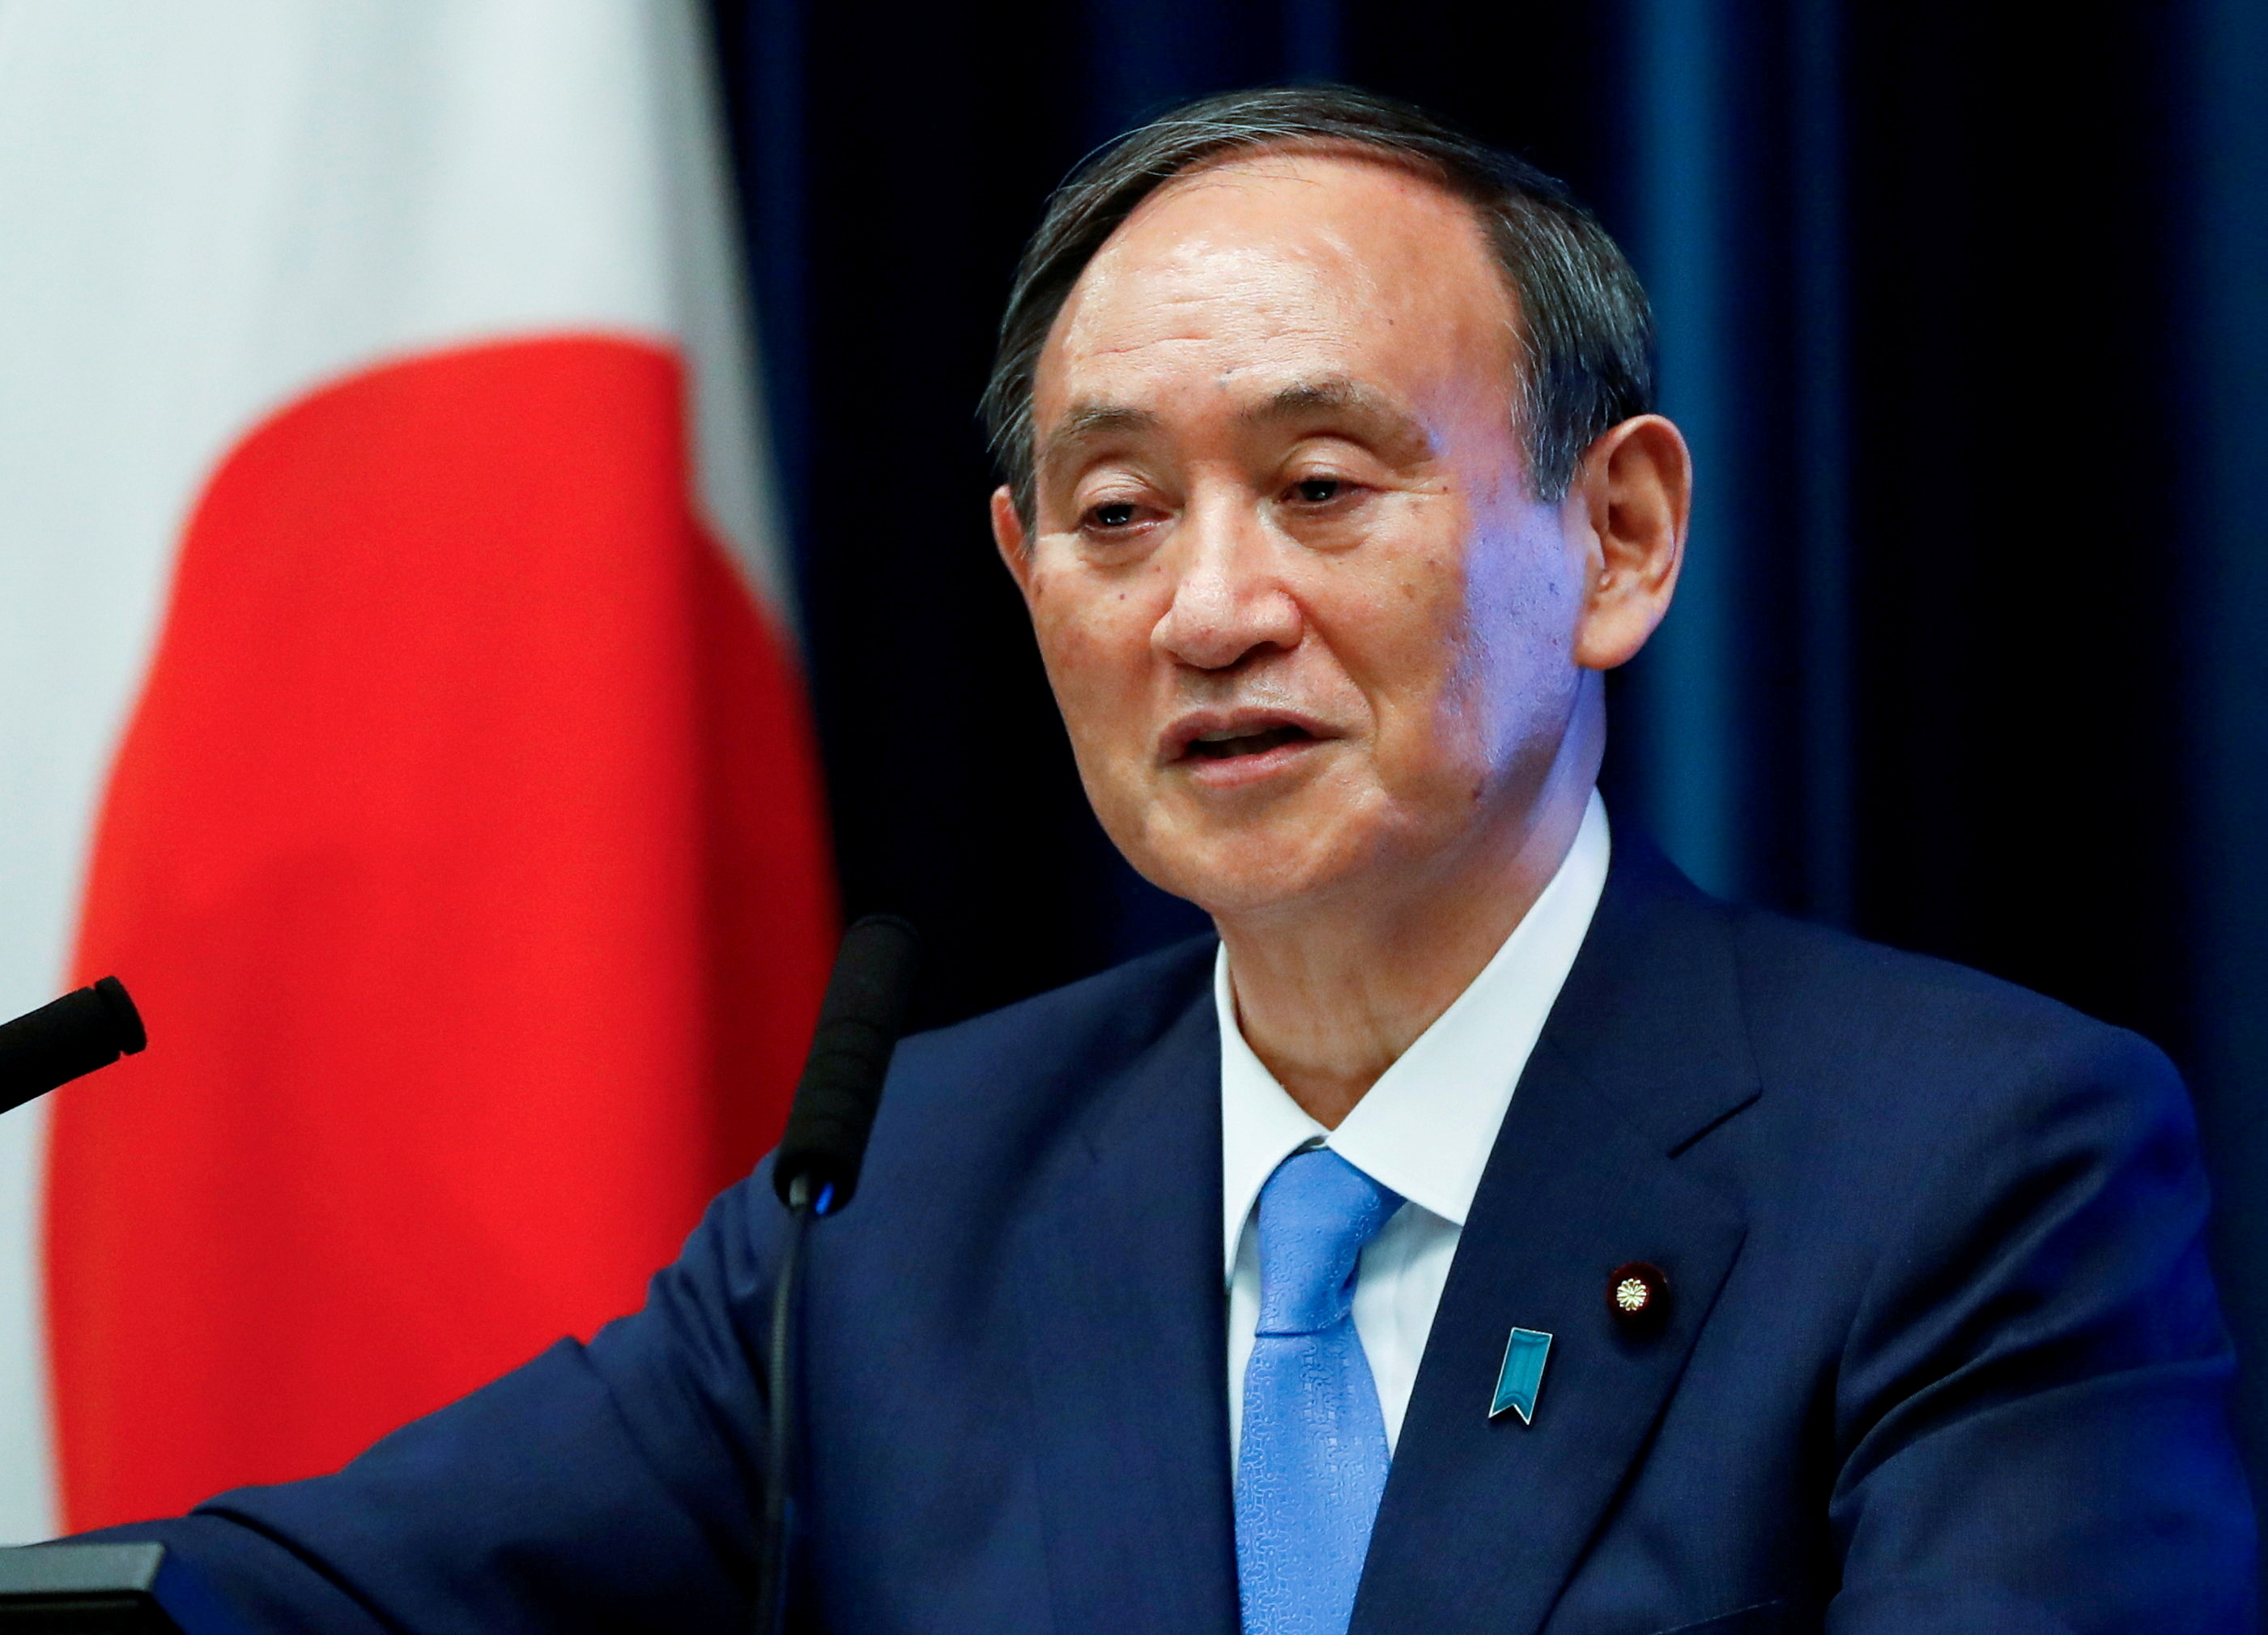 Japan's Prime Minister Yoshihide Suga attends a news conference on Japan's response to the coronavirus disease (COVID-19) outbreak, at his official residence in Tokyo, Japan, June 17, 2021. REUTERS/Issei Kato/File Photo